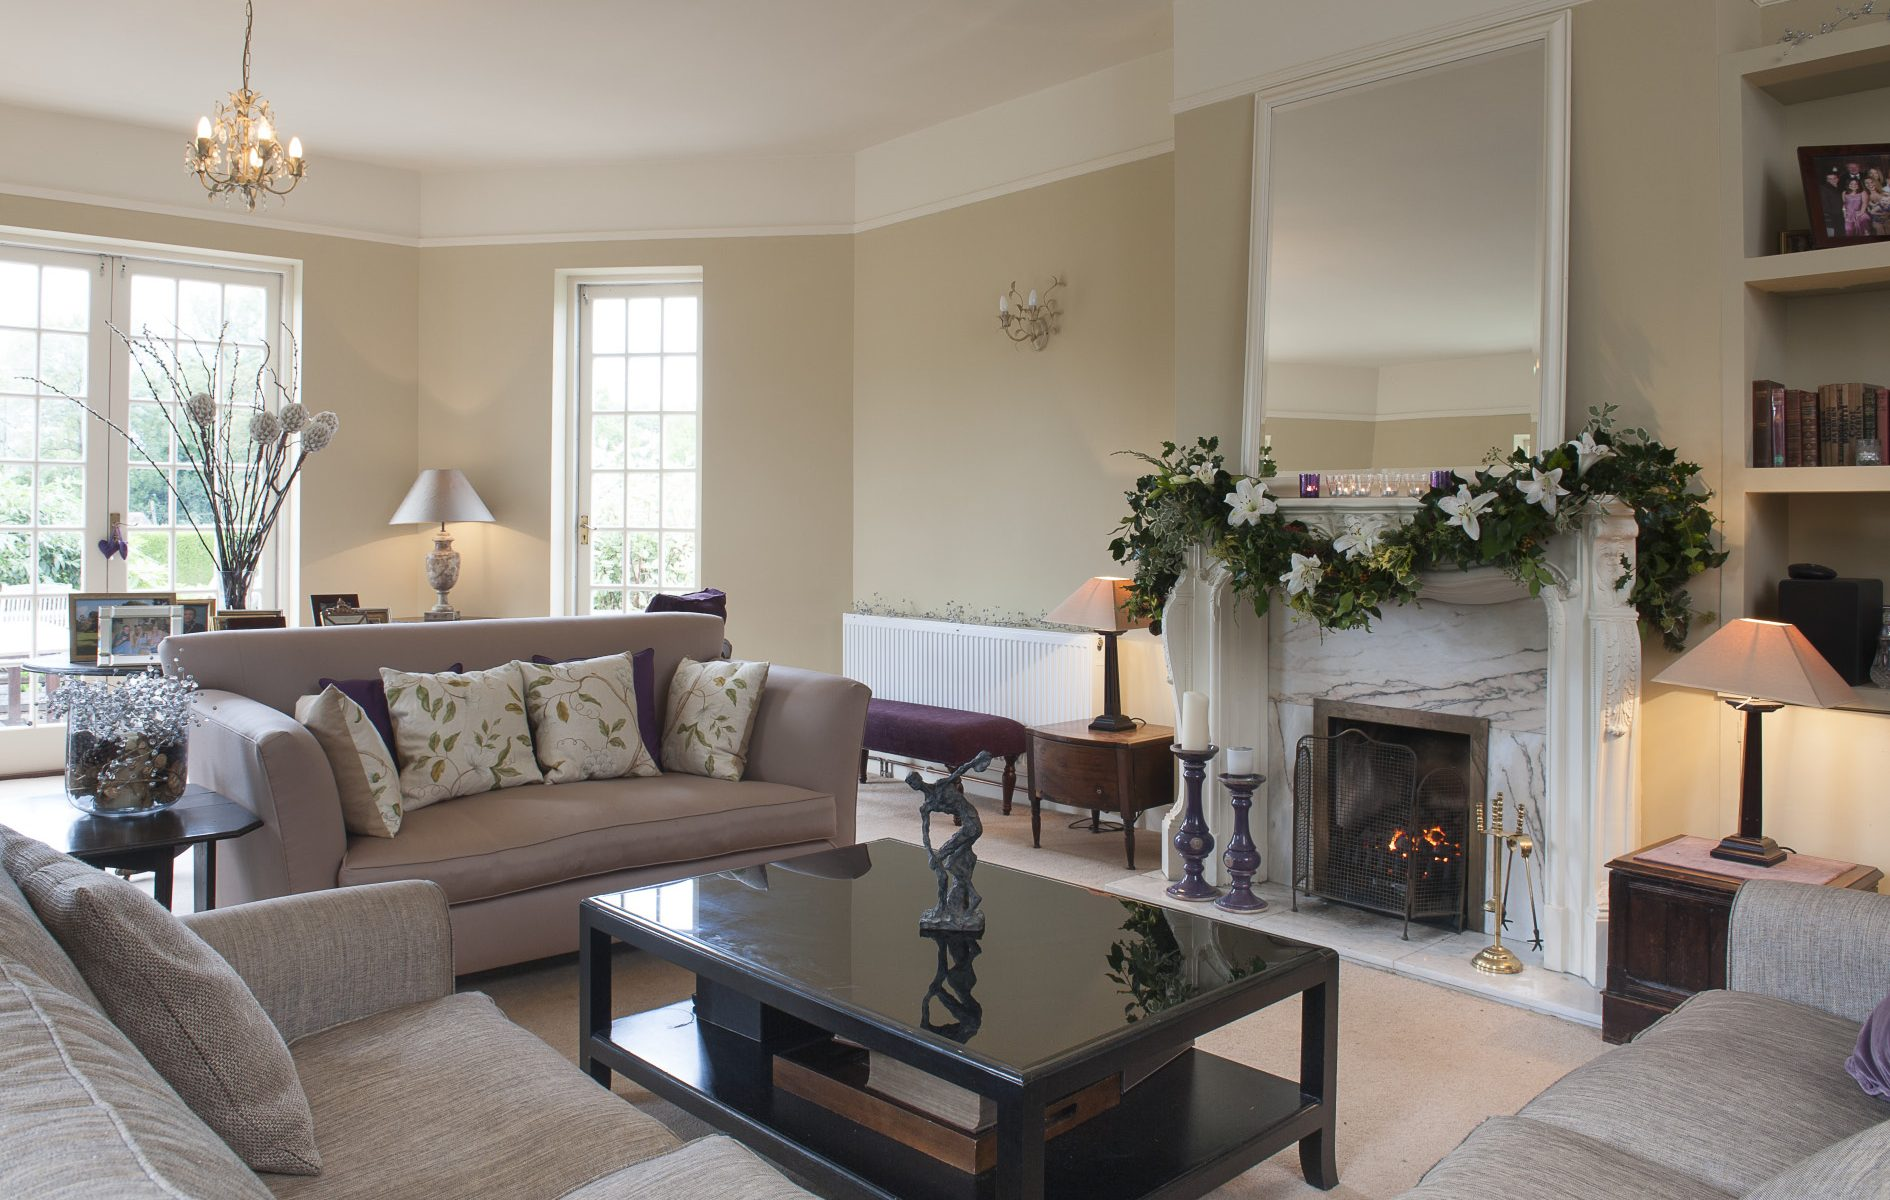 A glossy piano black coffee table stands in the centre of the spacious drawing room between the three sofas